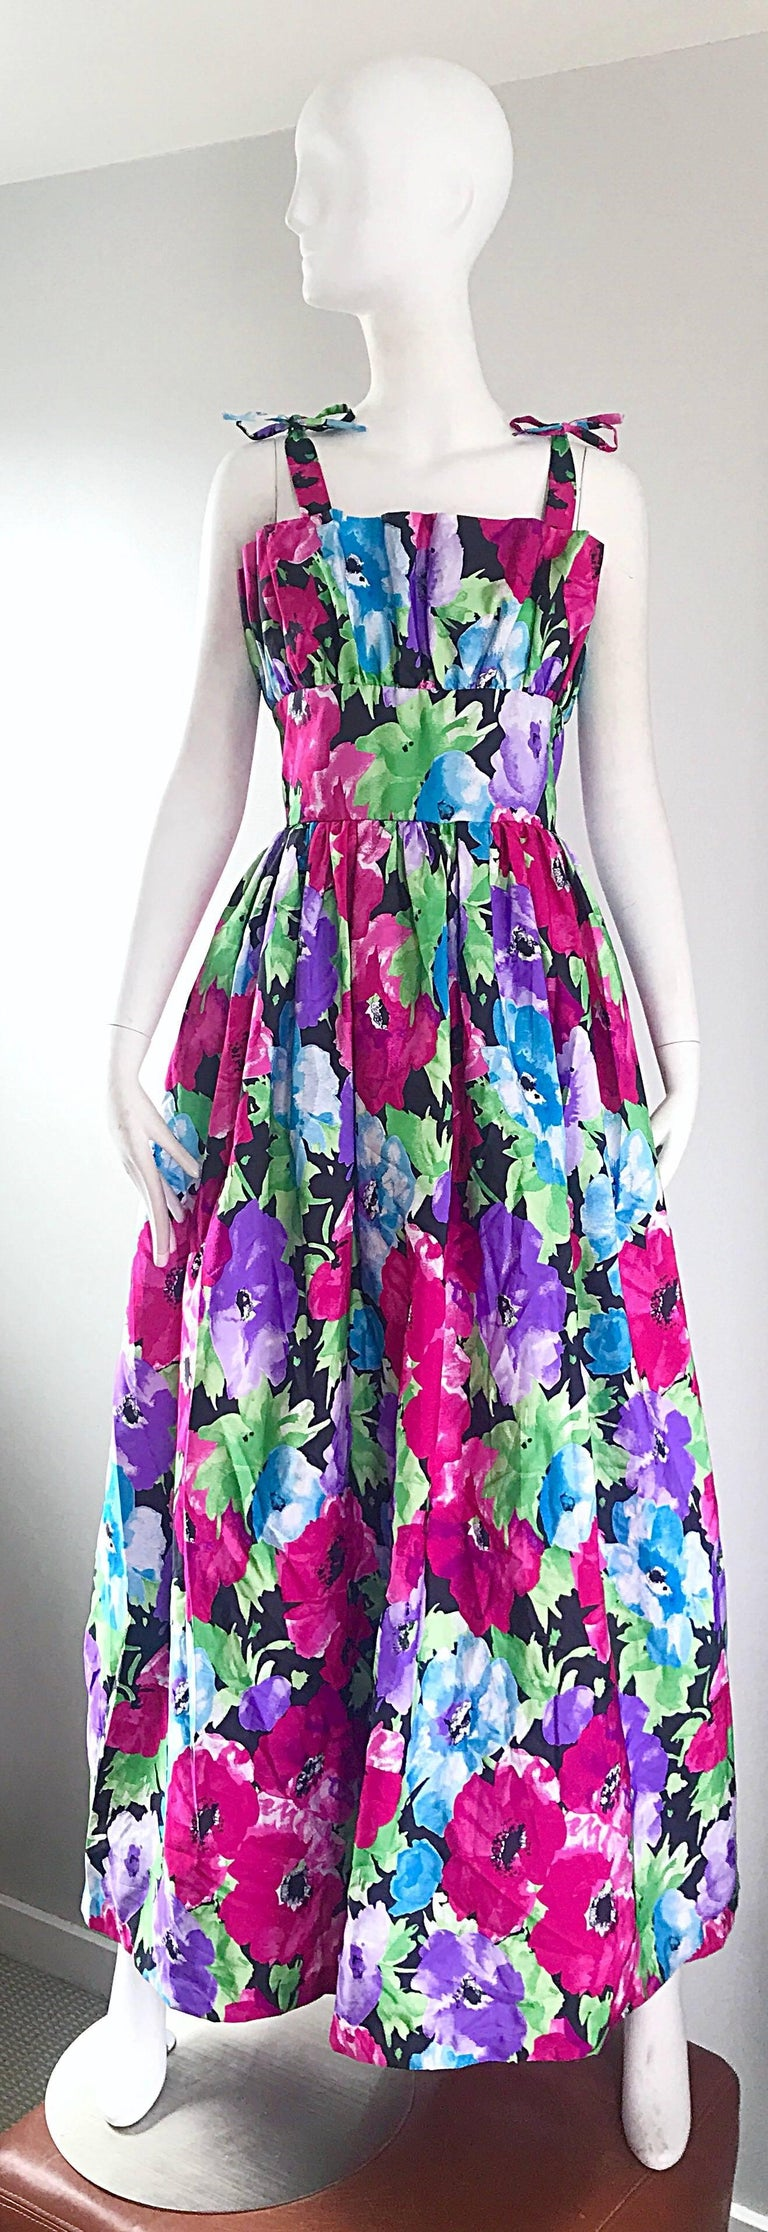 Gorgeous vintage VOCTOR COSTA taffeta flower gown / maxi dress! Features a tropical flower print in vibrant colors of pink, fuchsia, blue, green and black. Avant Garde accordion detail at the bodice. Detachable ribbon ties at each shoulder strap.